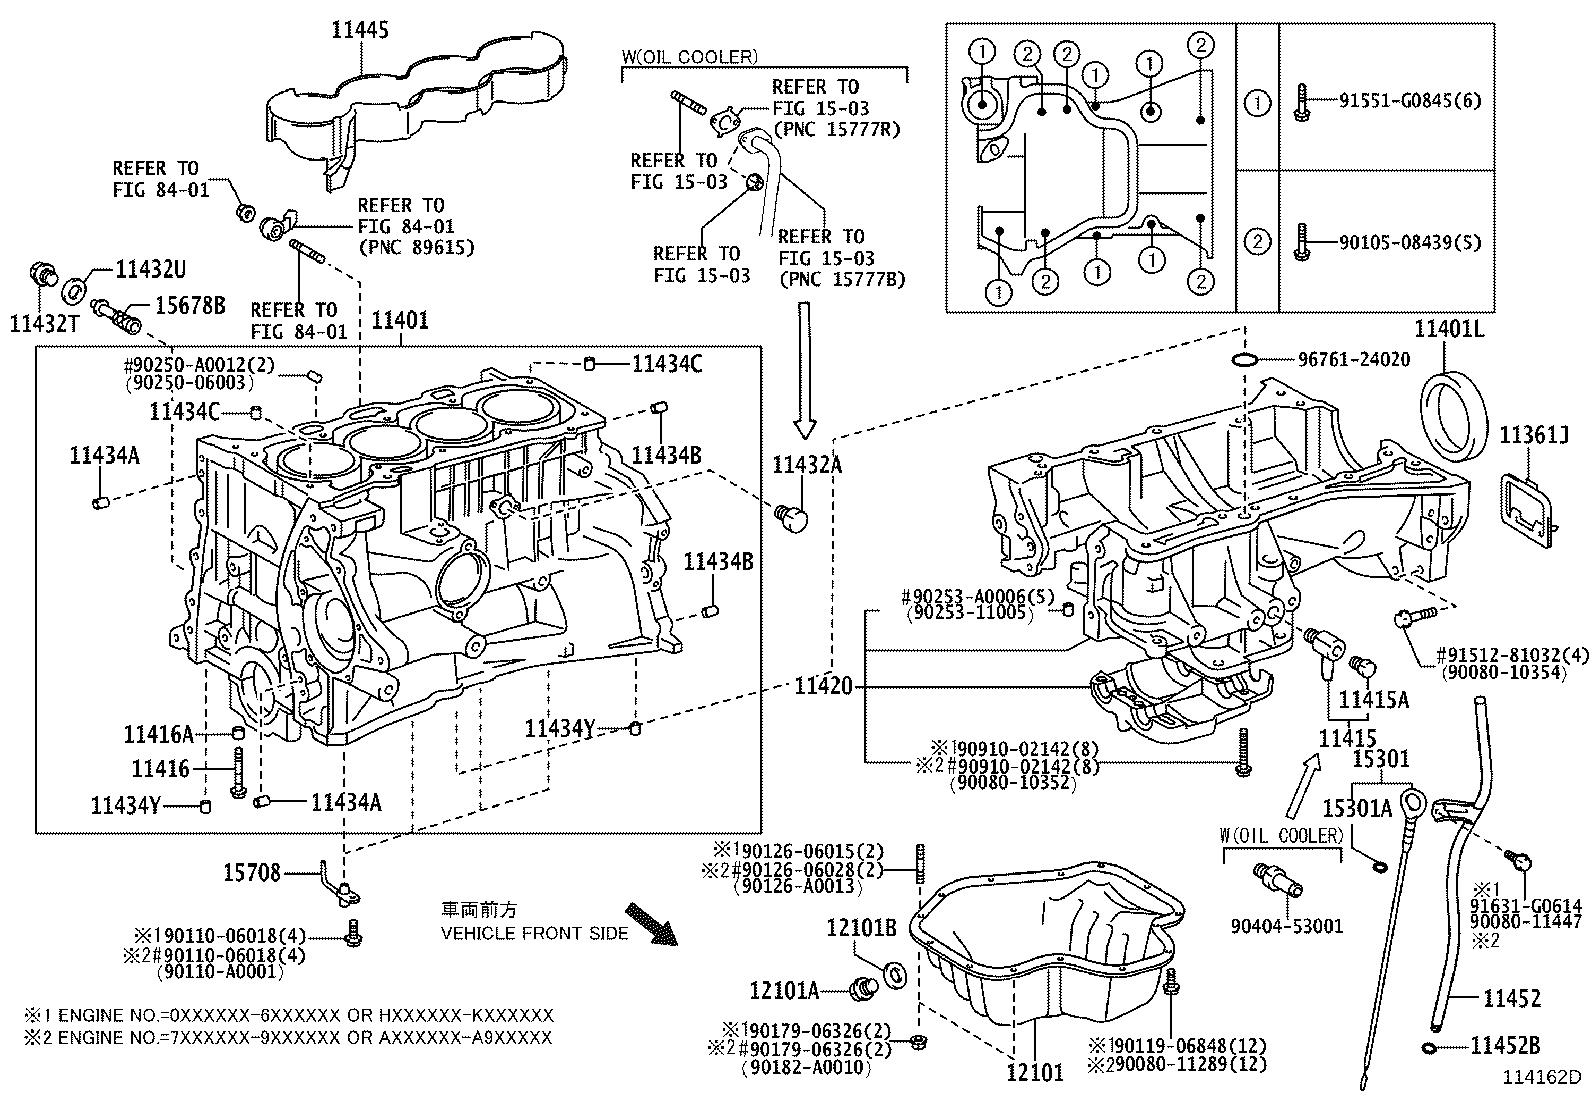 Toyota Camry Nozzle sub-assembly, oil, no. 1. Engine